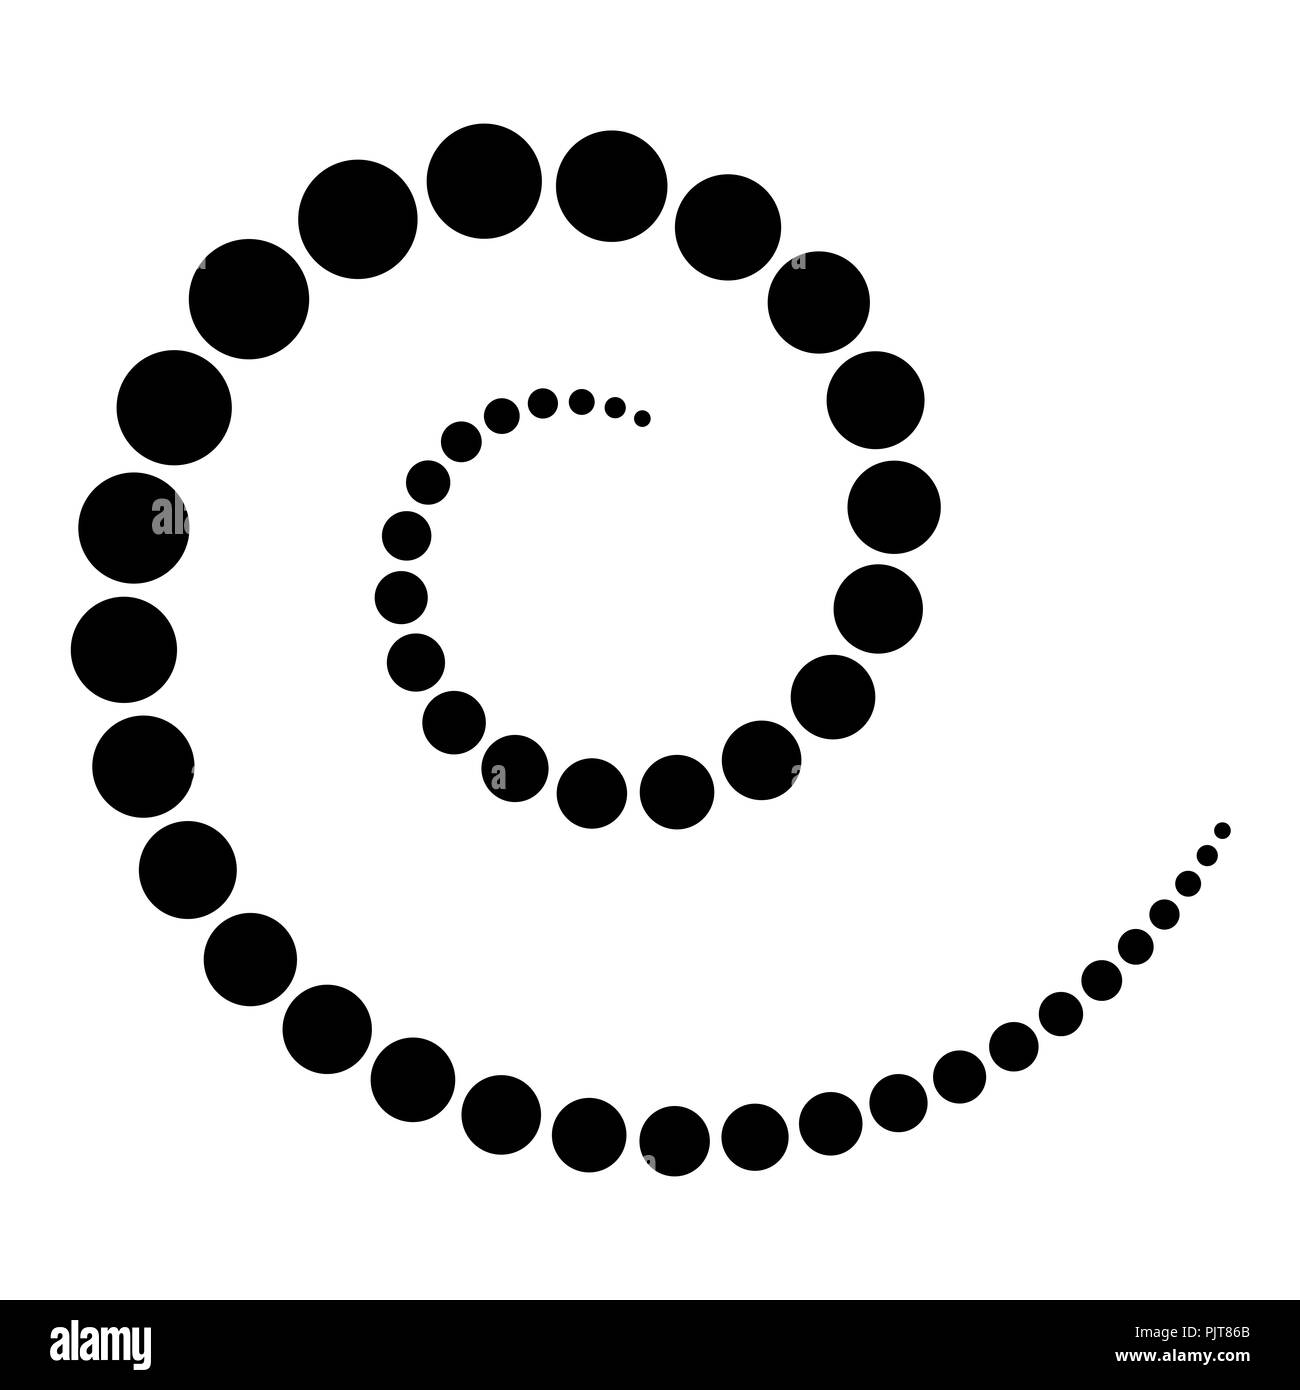 Spiral made of black dots. Increasing points from the center of the spiral which then become smaller again. Black isolated illustration on white. - Stock Image